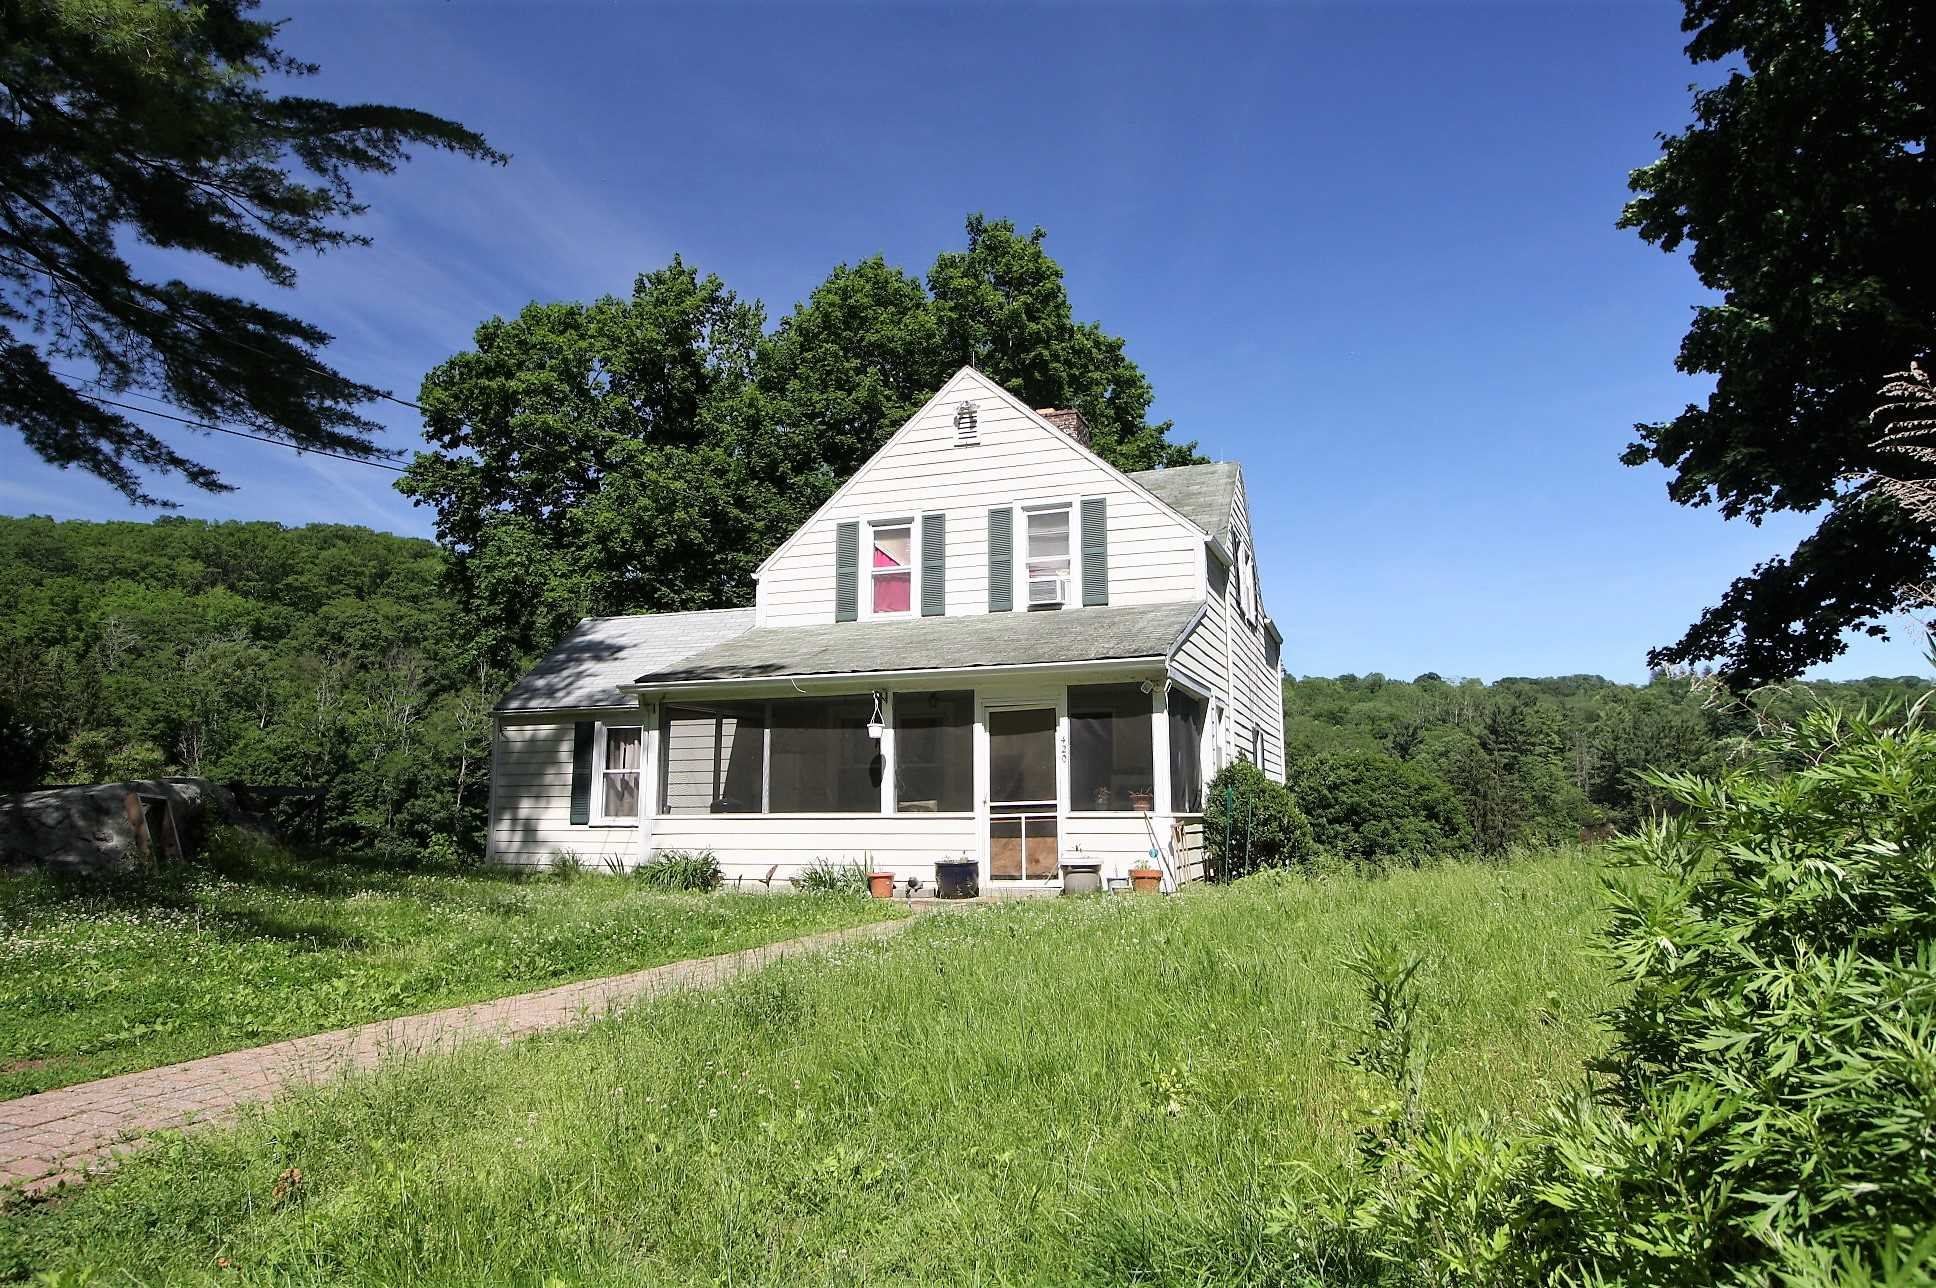 Single Family Home for Sale at 420 QUAKER HILL Road 420 QUAKER HILL Road Pawling, New York 12564 United States